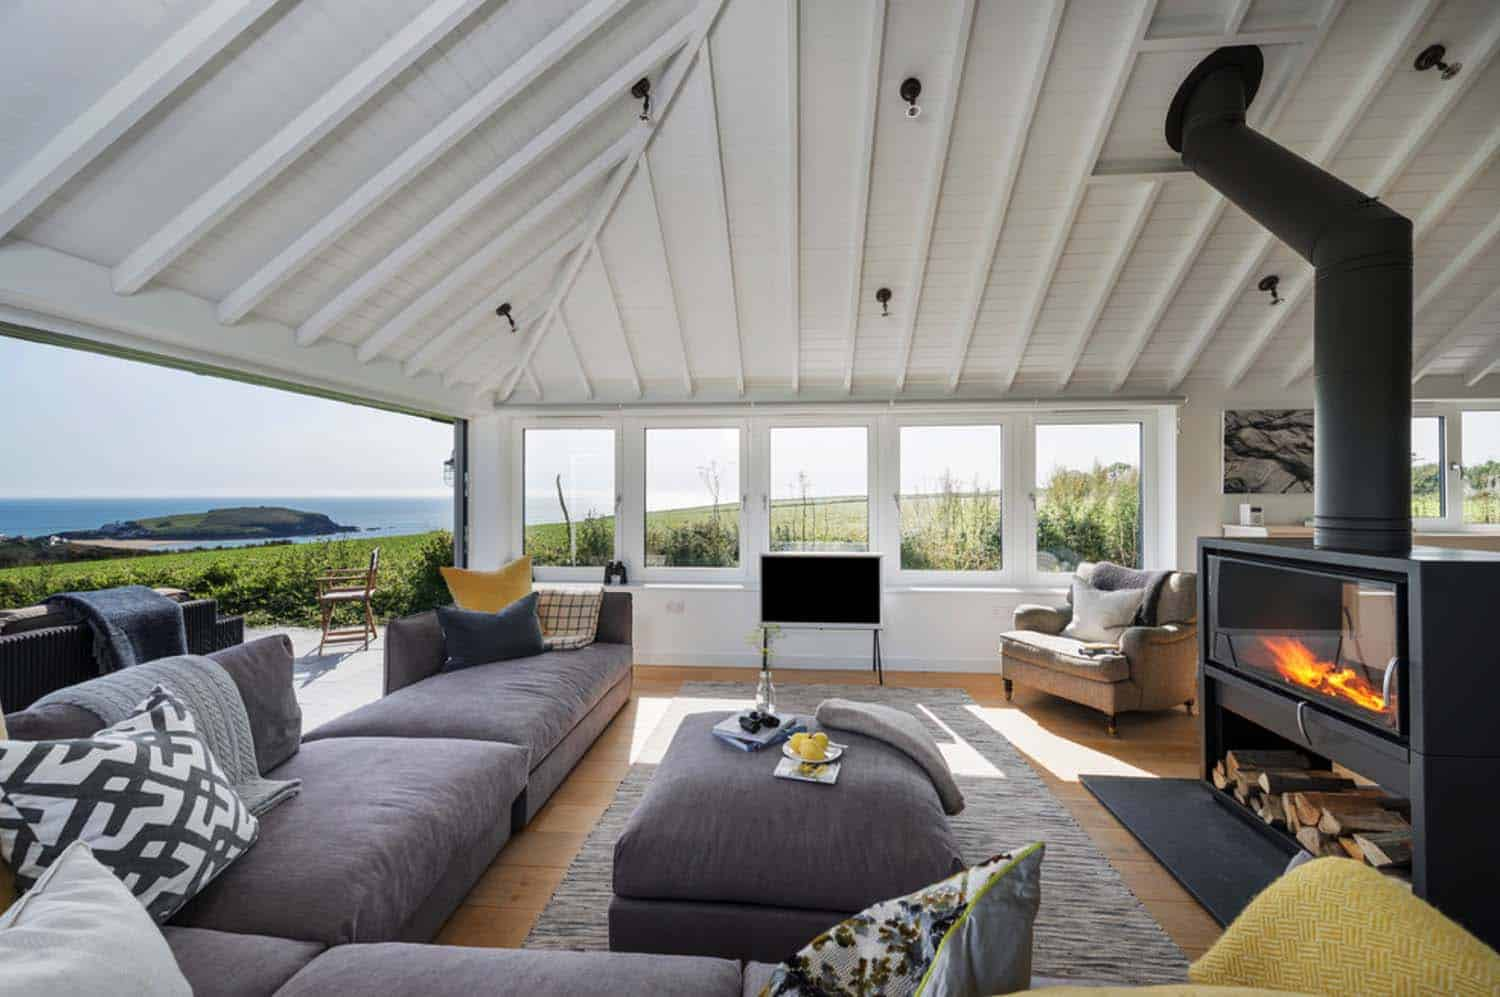 Beautiful Seaside Bungalow Completely Transformed In South Hams